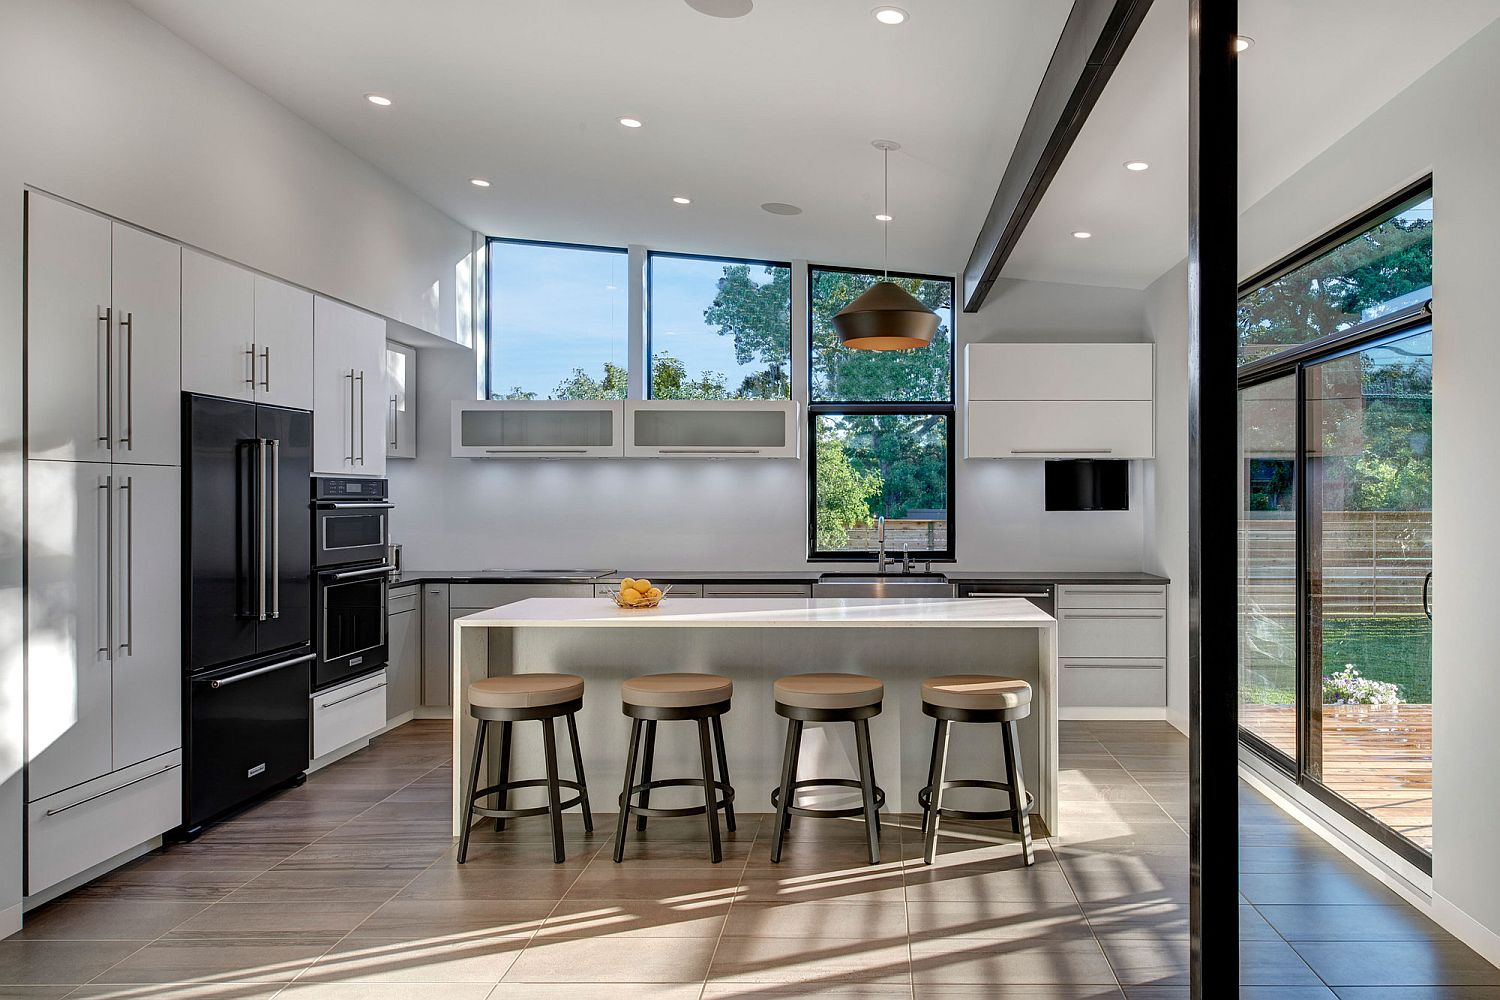 Glass-walls-and-windows-bring-ample-light-into-the-kitchen